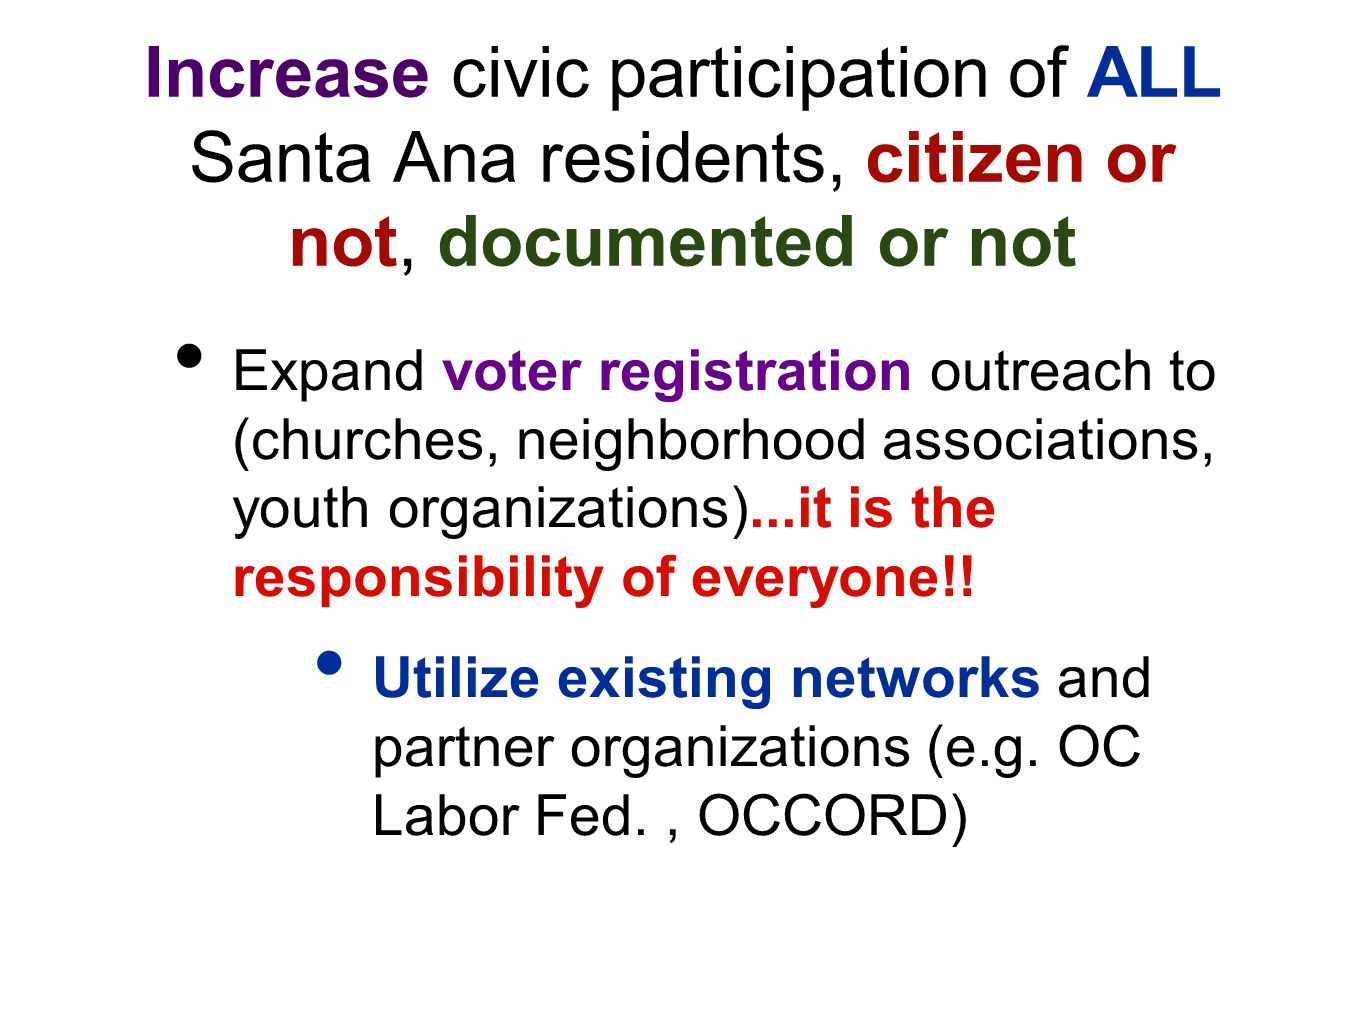 Increase civic participation of ALL Santa Ana residents, citizen or not, documented or not Expand voter registration outreach to (churches, neighborhood associations, youth organizations)...it is the responsibility of everyone!.